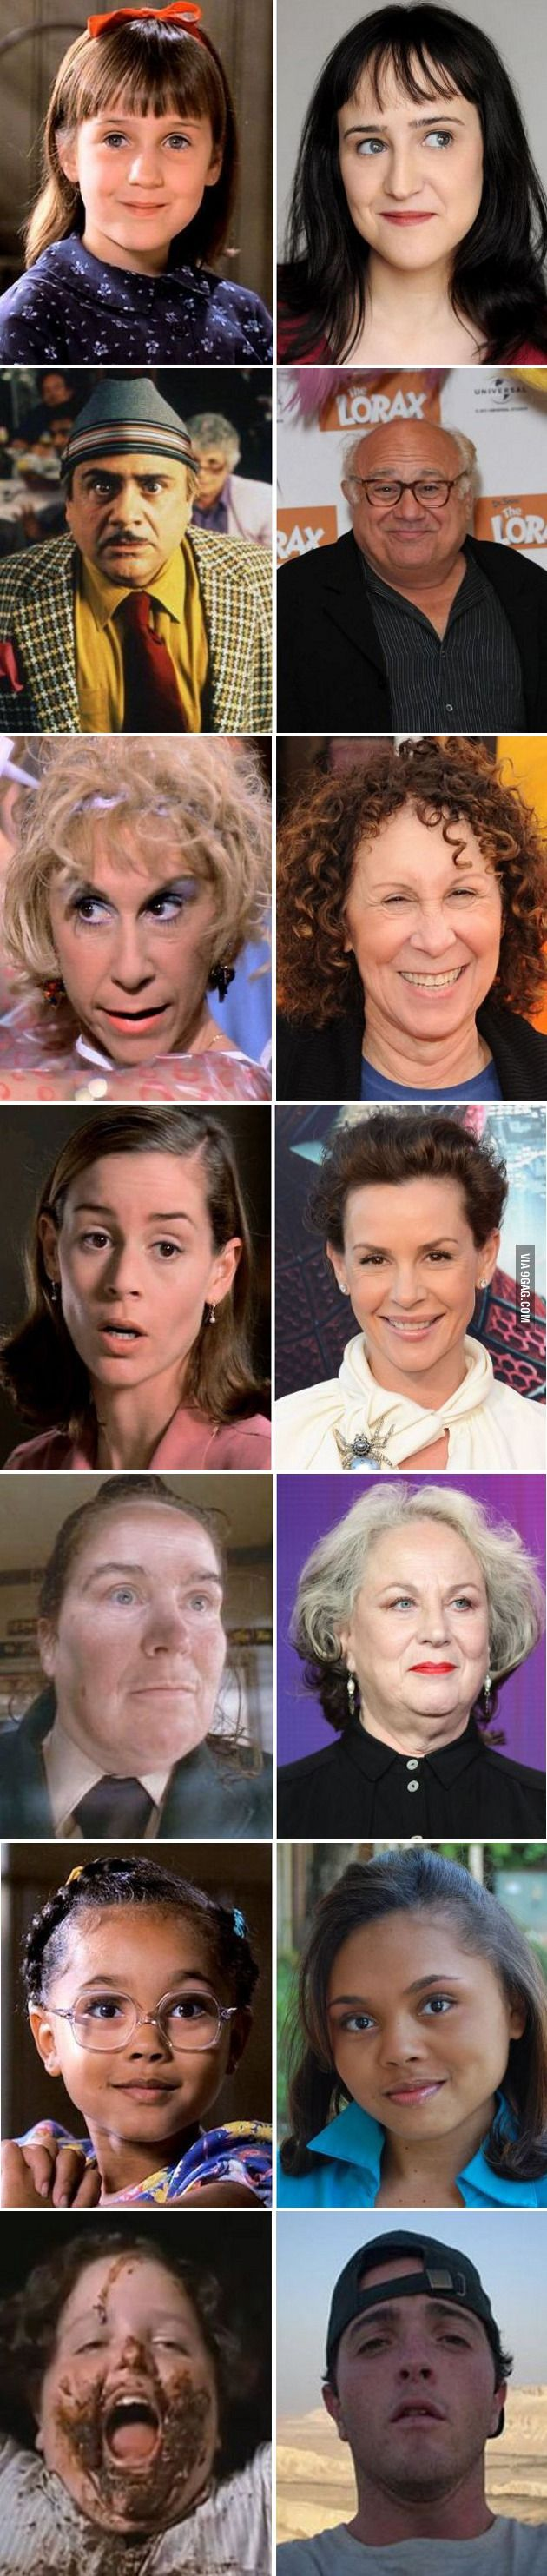 Matilda Characters Then and Now